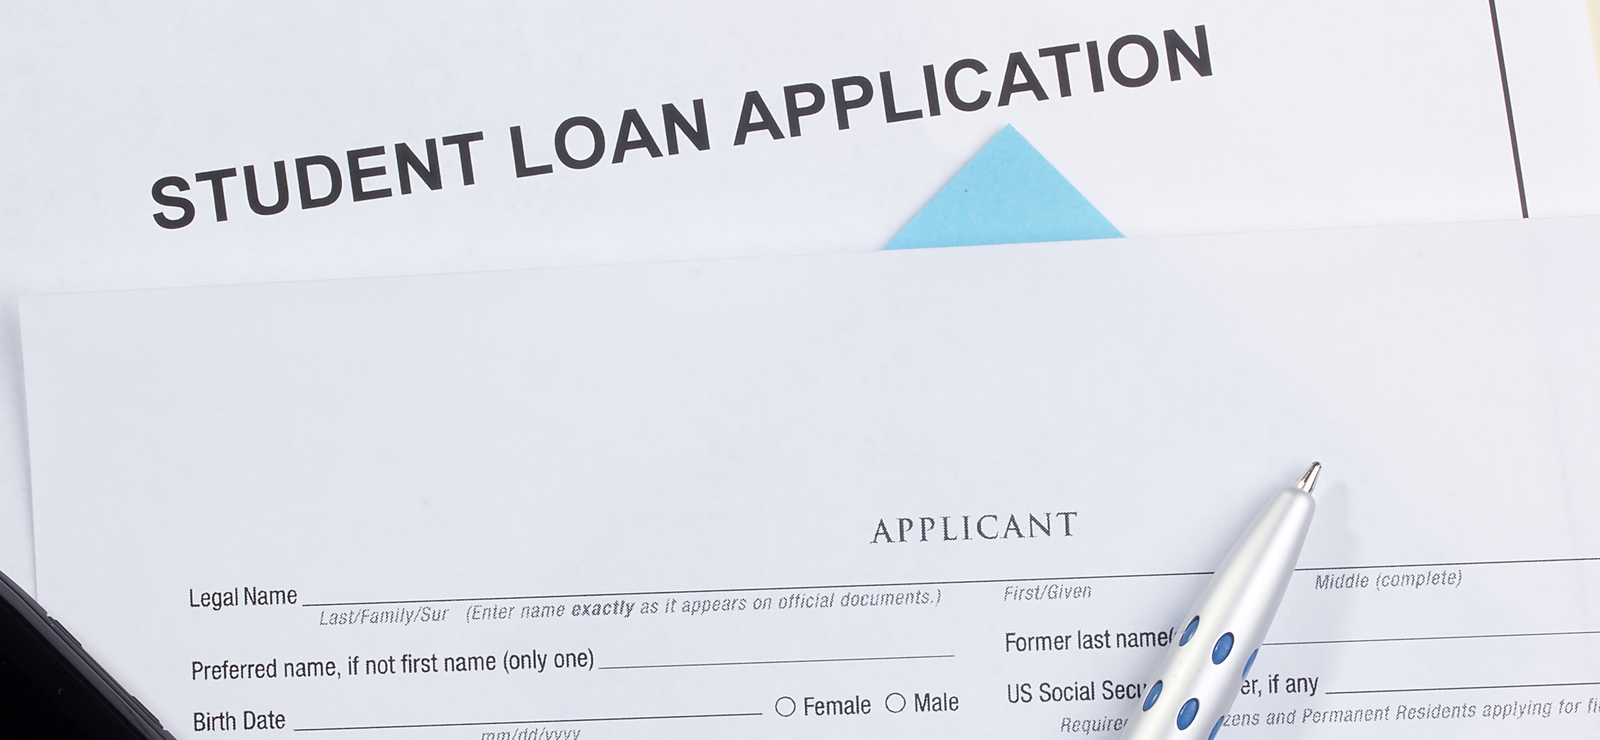 Aspire Resources Out of Federal Student Loan Servicing